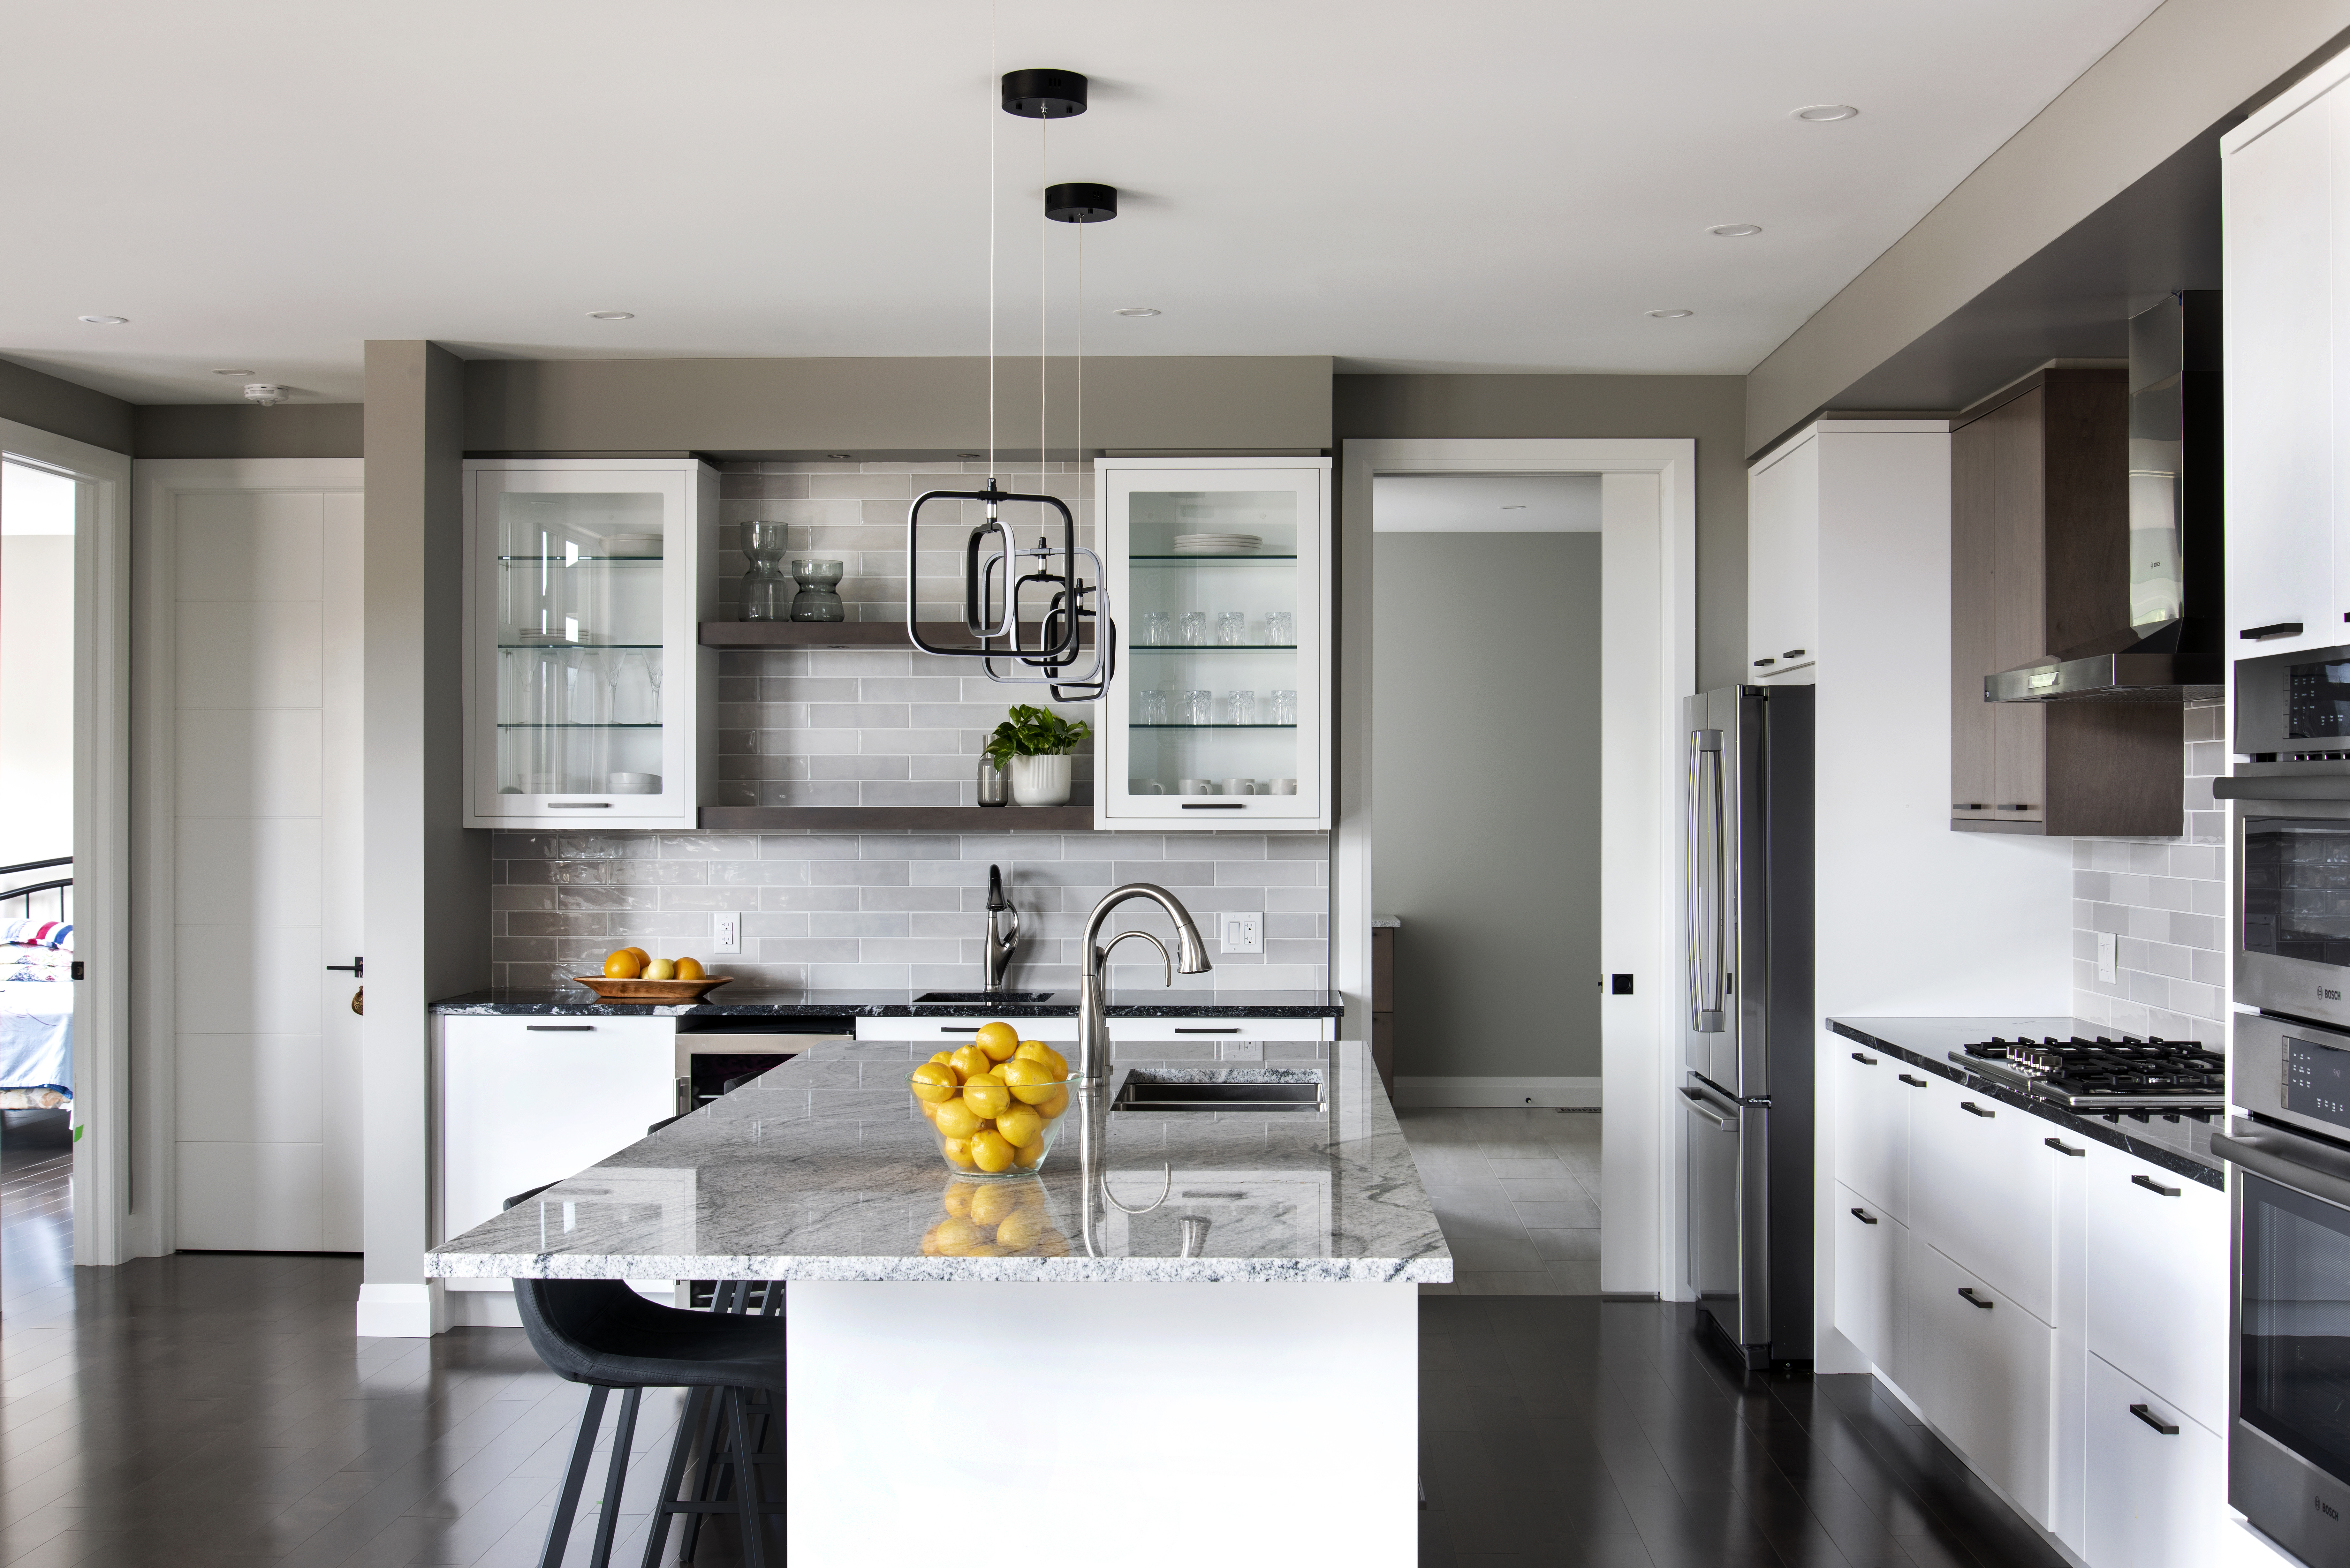 A Deslaurier kitchen with a neutral colour scheme, accented with bright fruit display pieces.